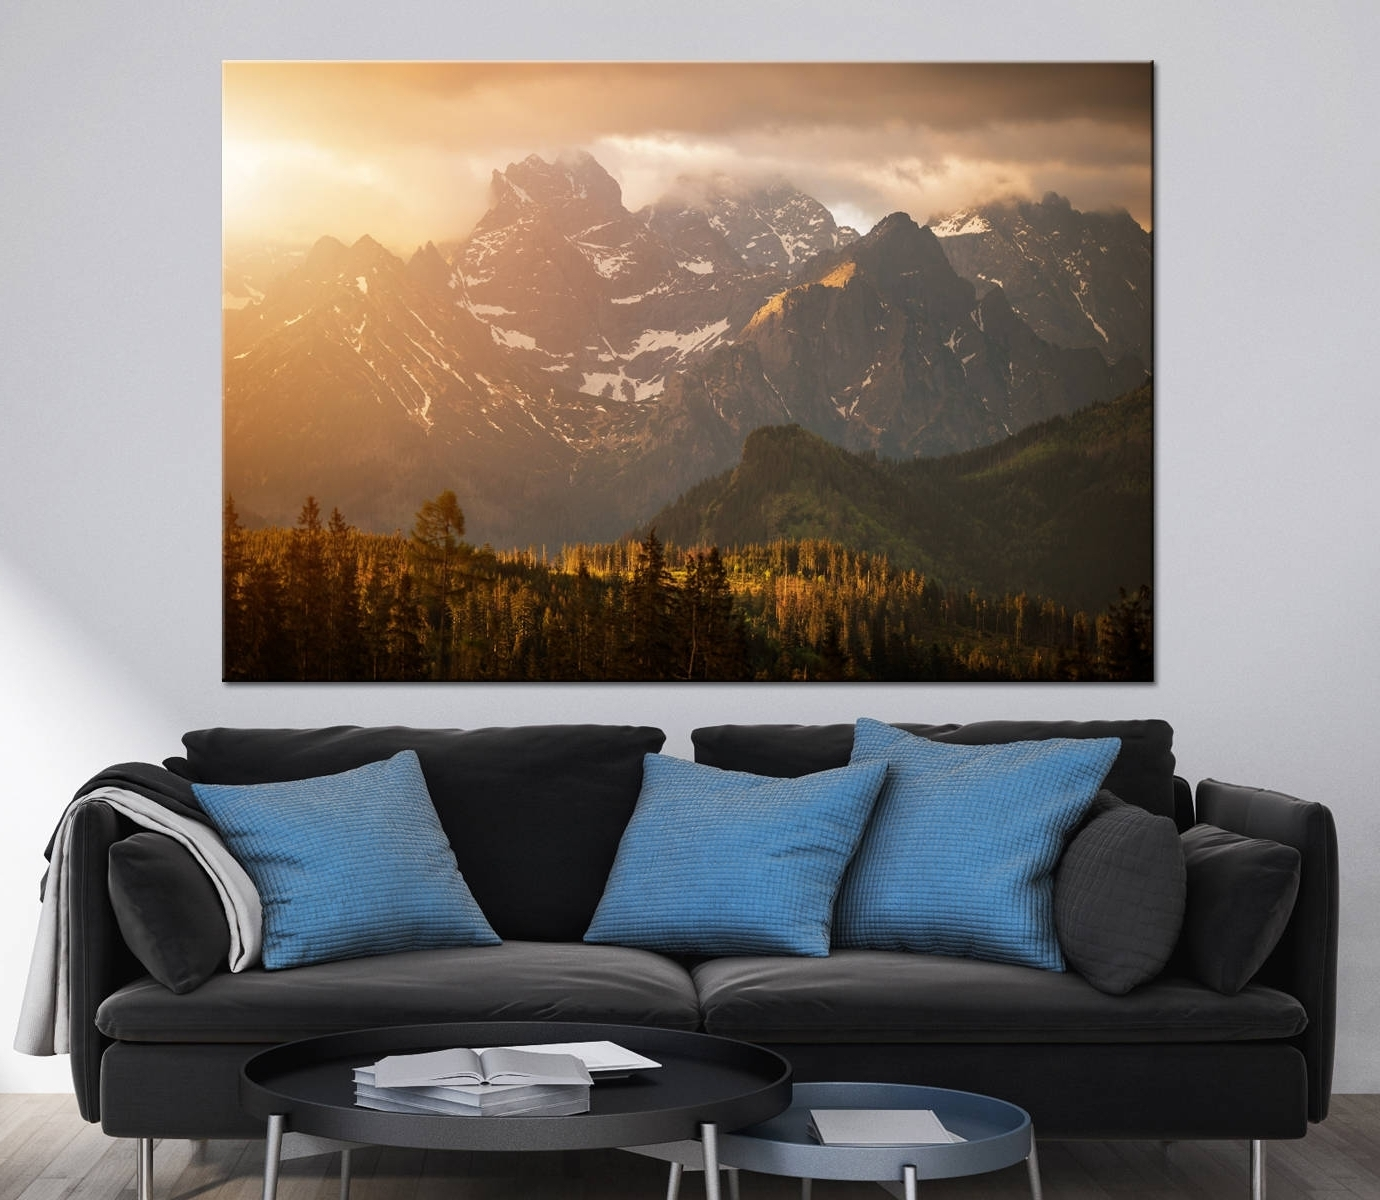 New Canvas Wall Art Nature (View 11 of 15)